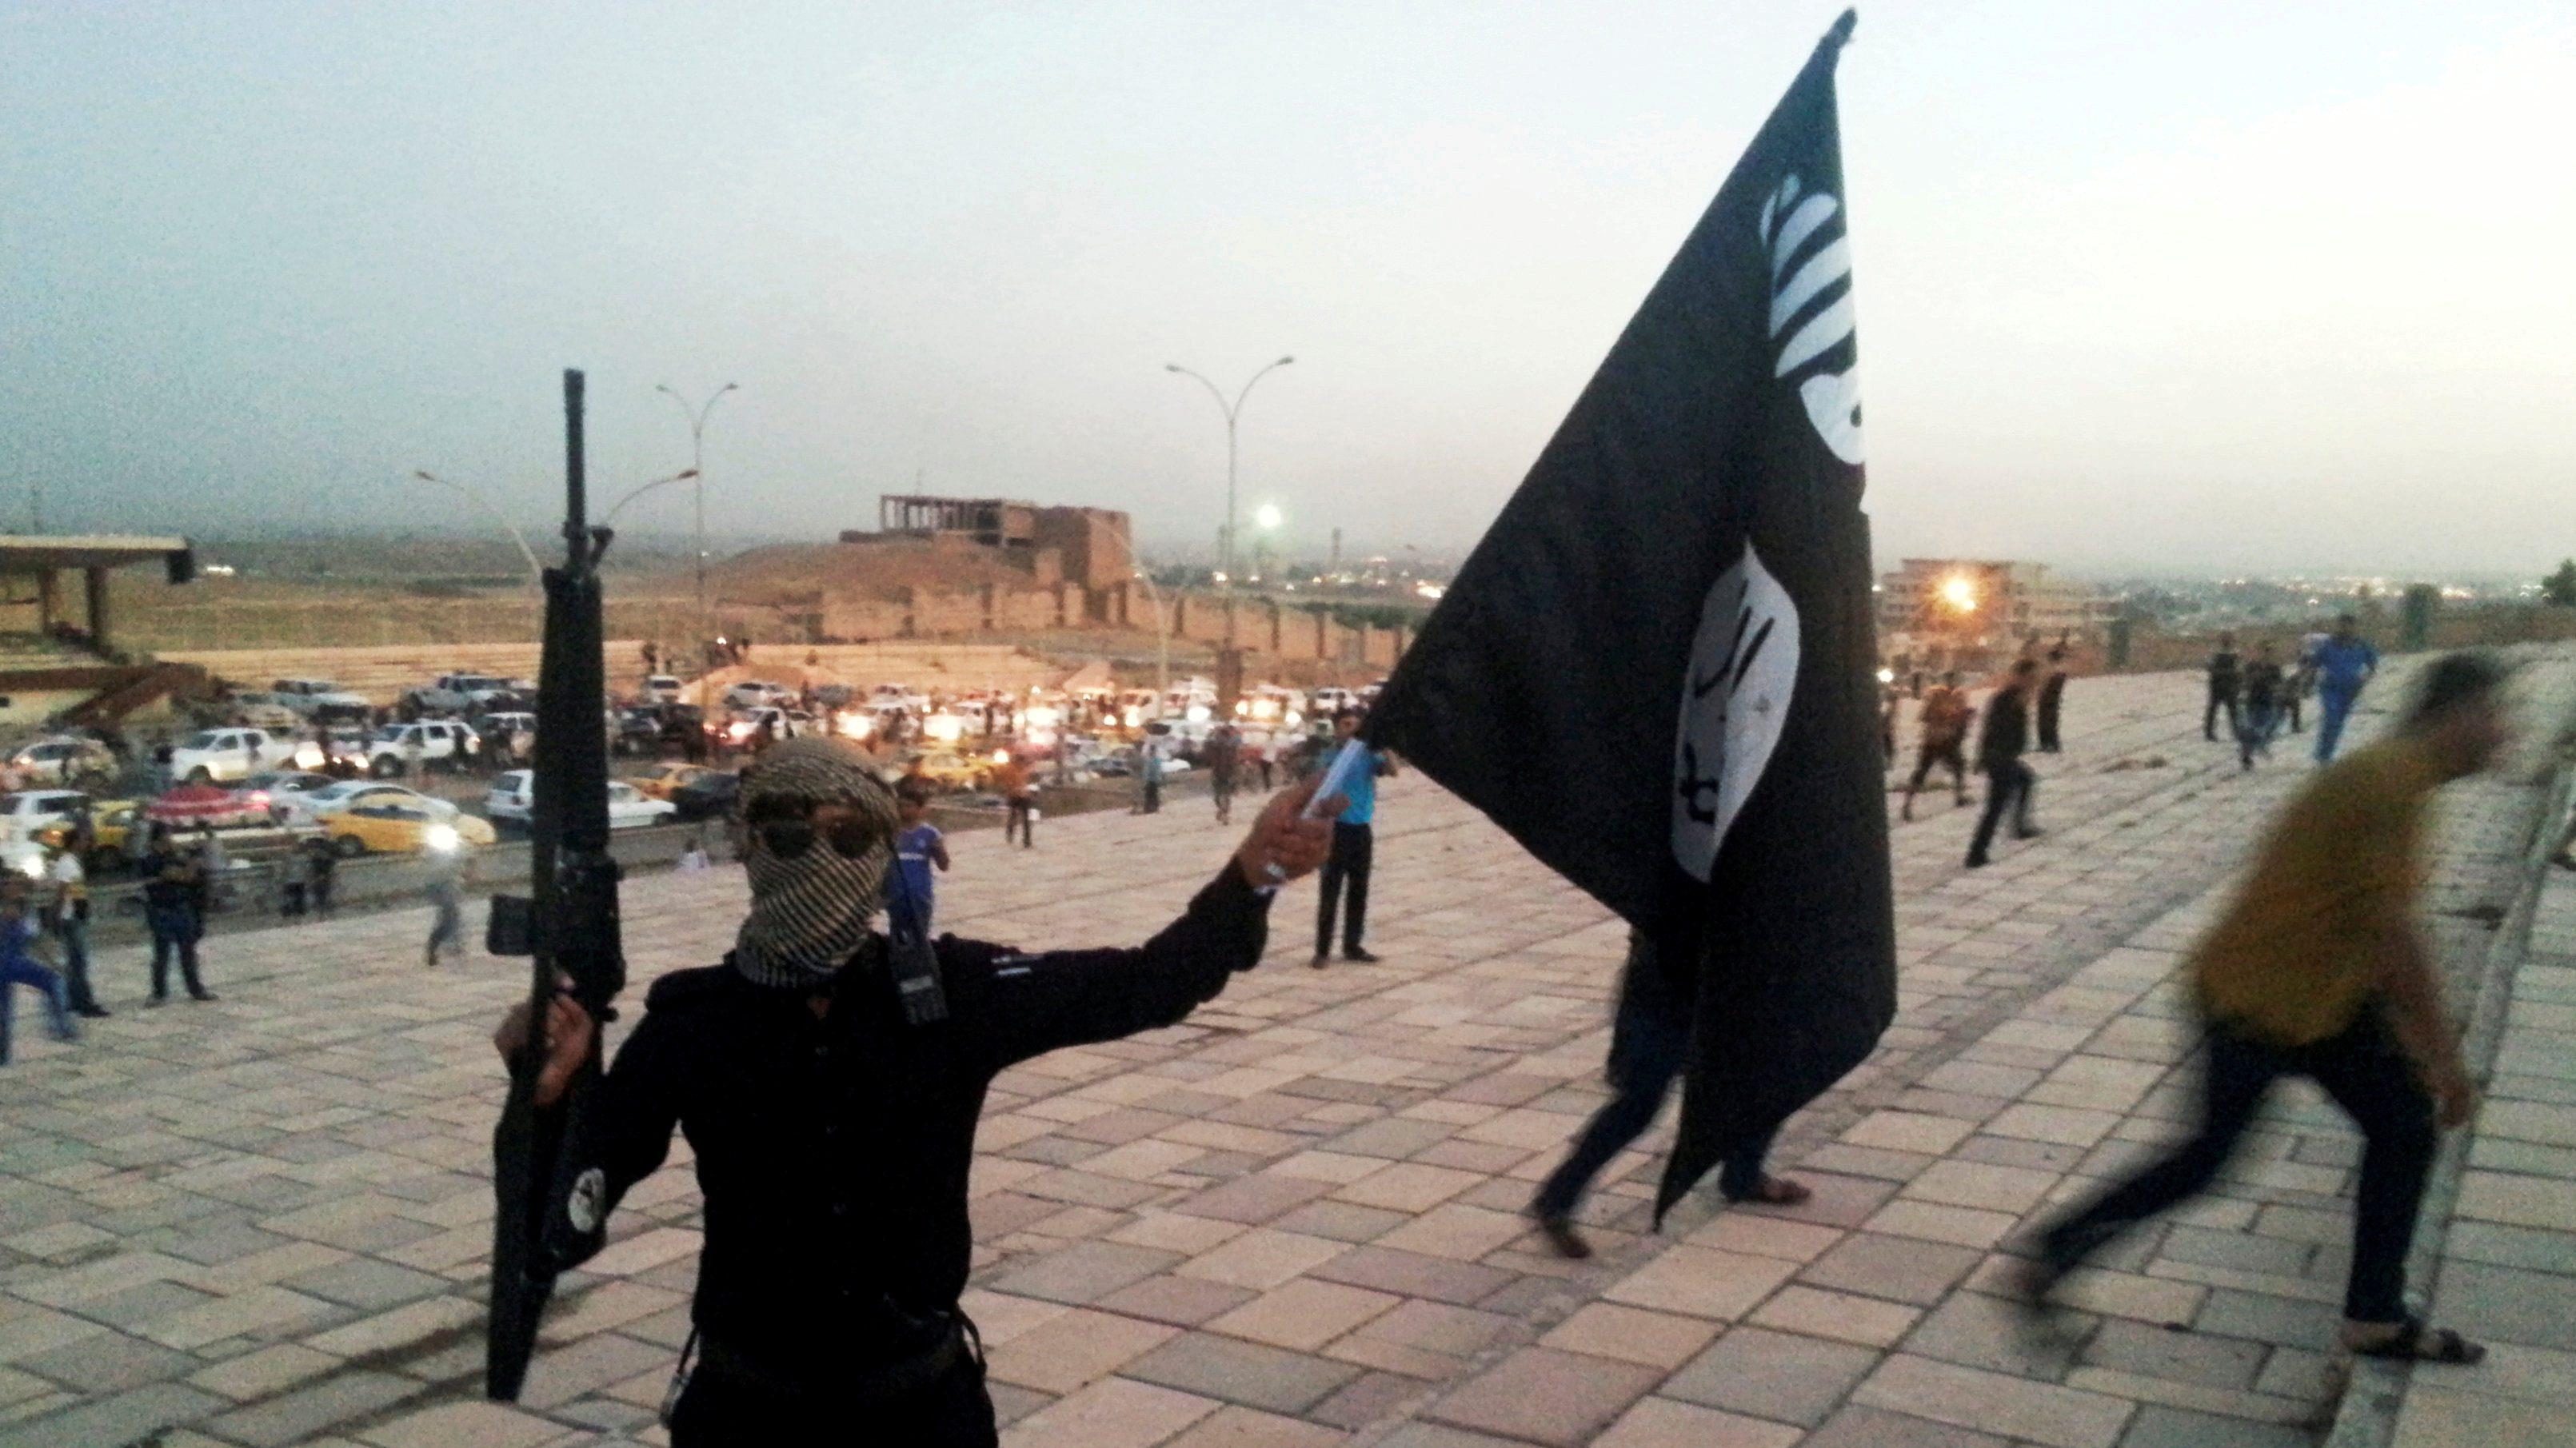 A fighter of ISIL holds a flag and a weapon on a street in Mosul